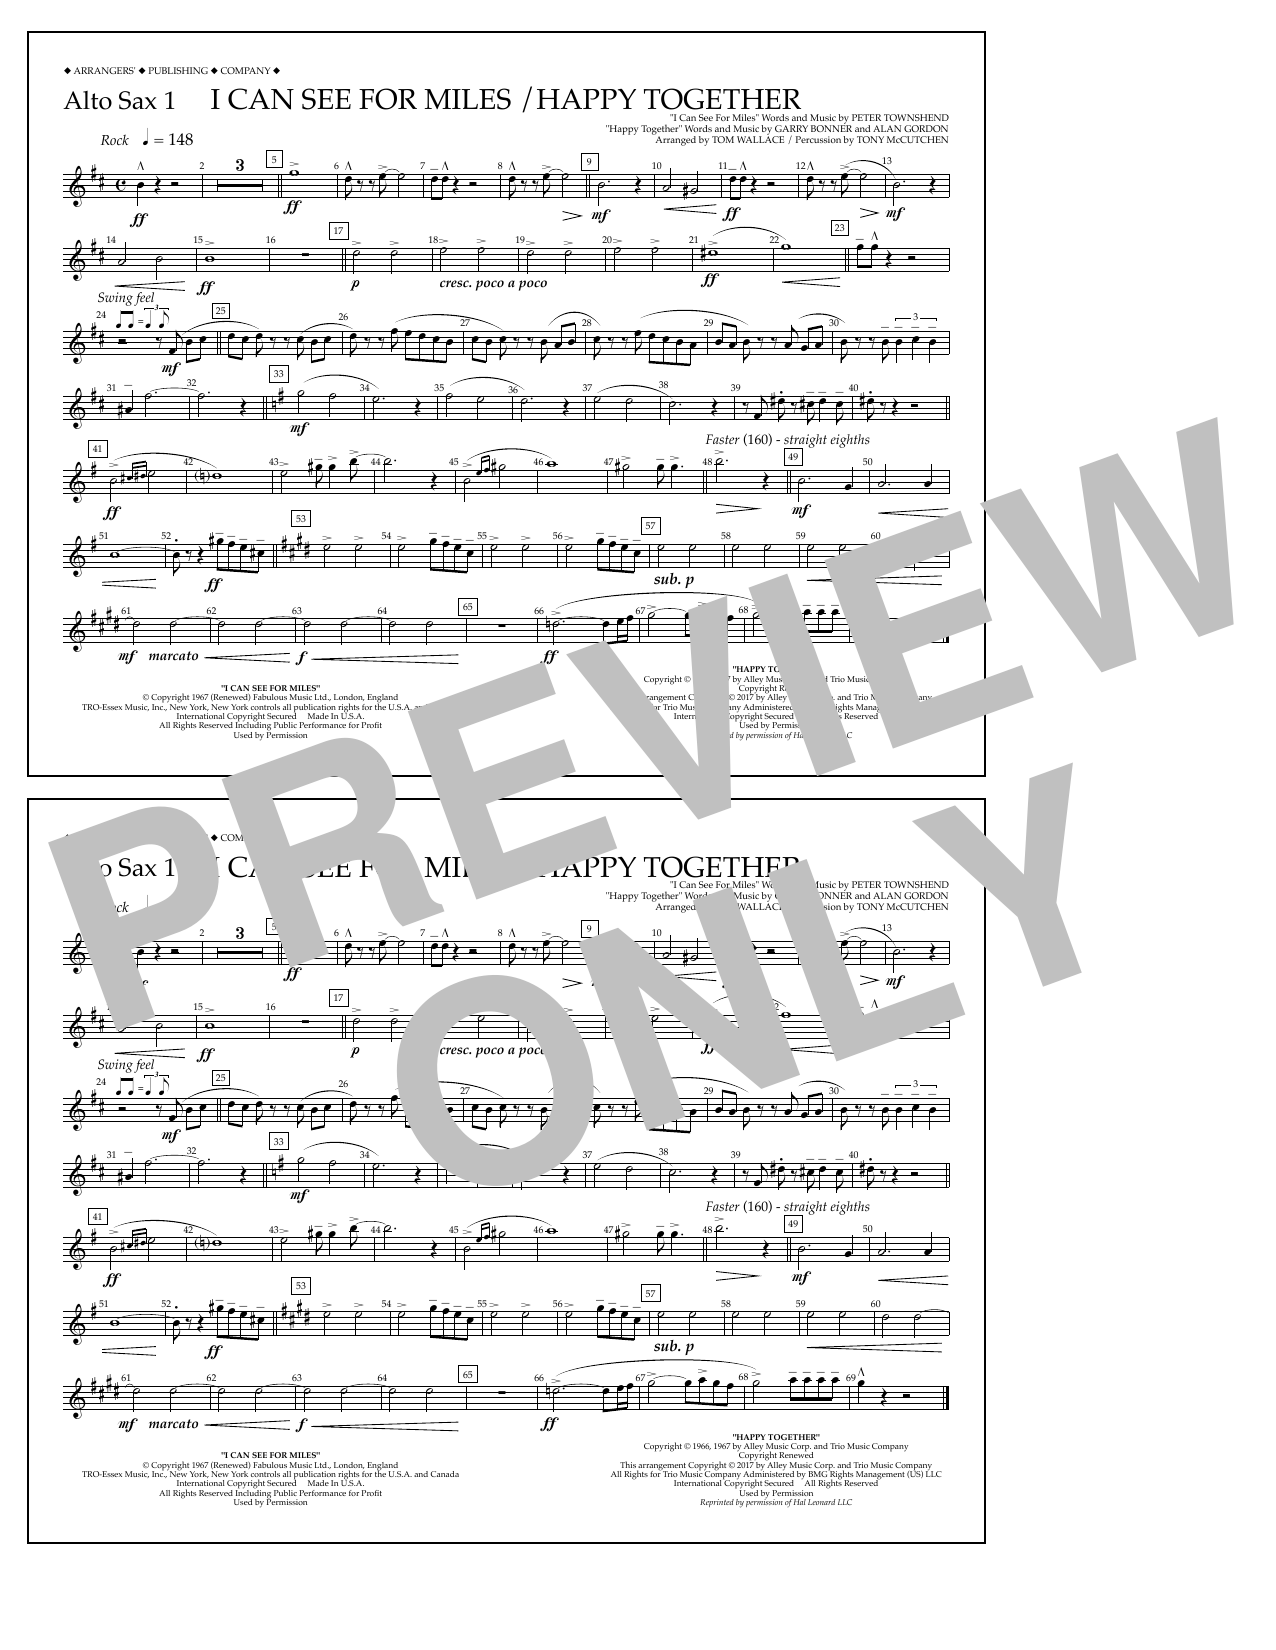 I Can See for Miles/Happy Together - Alto Sax 1 Sheet Music